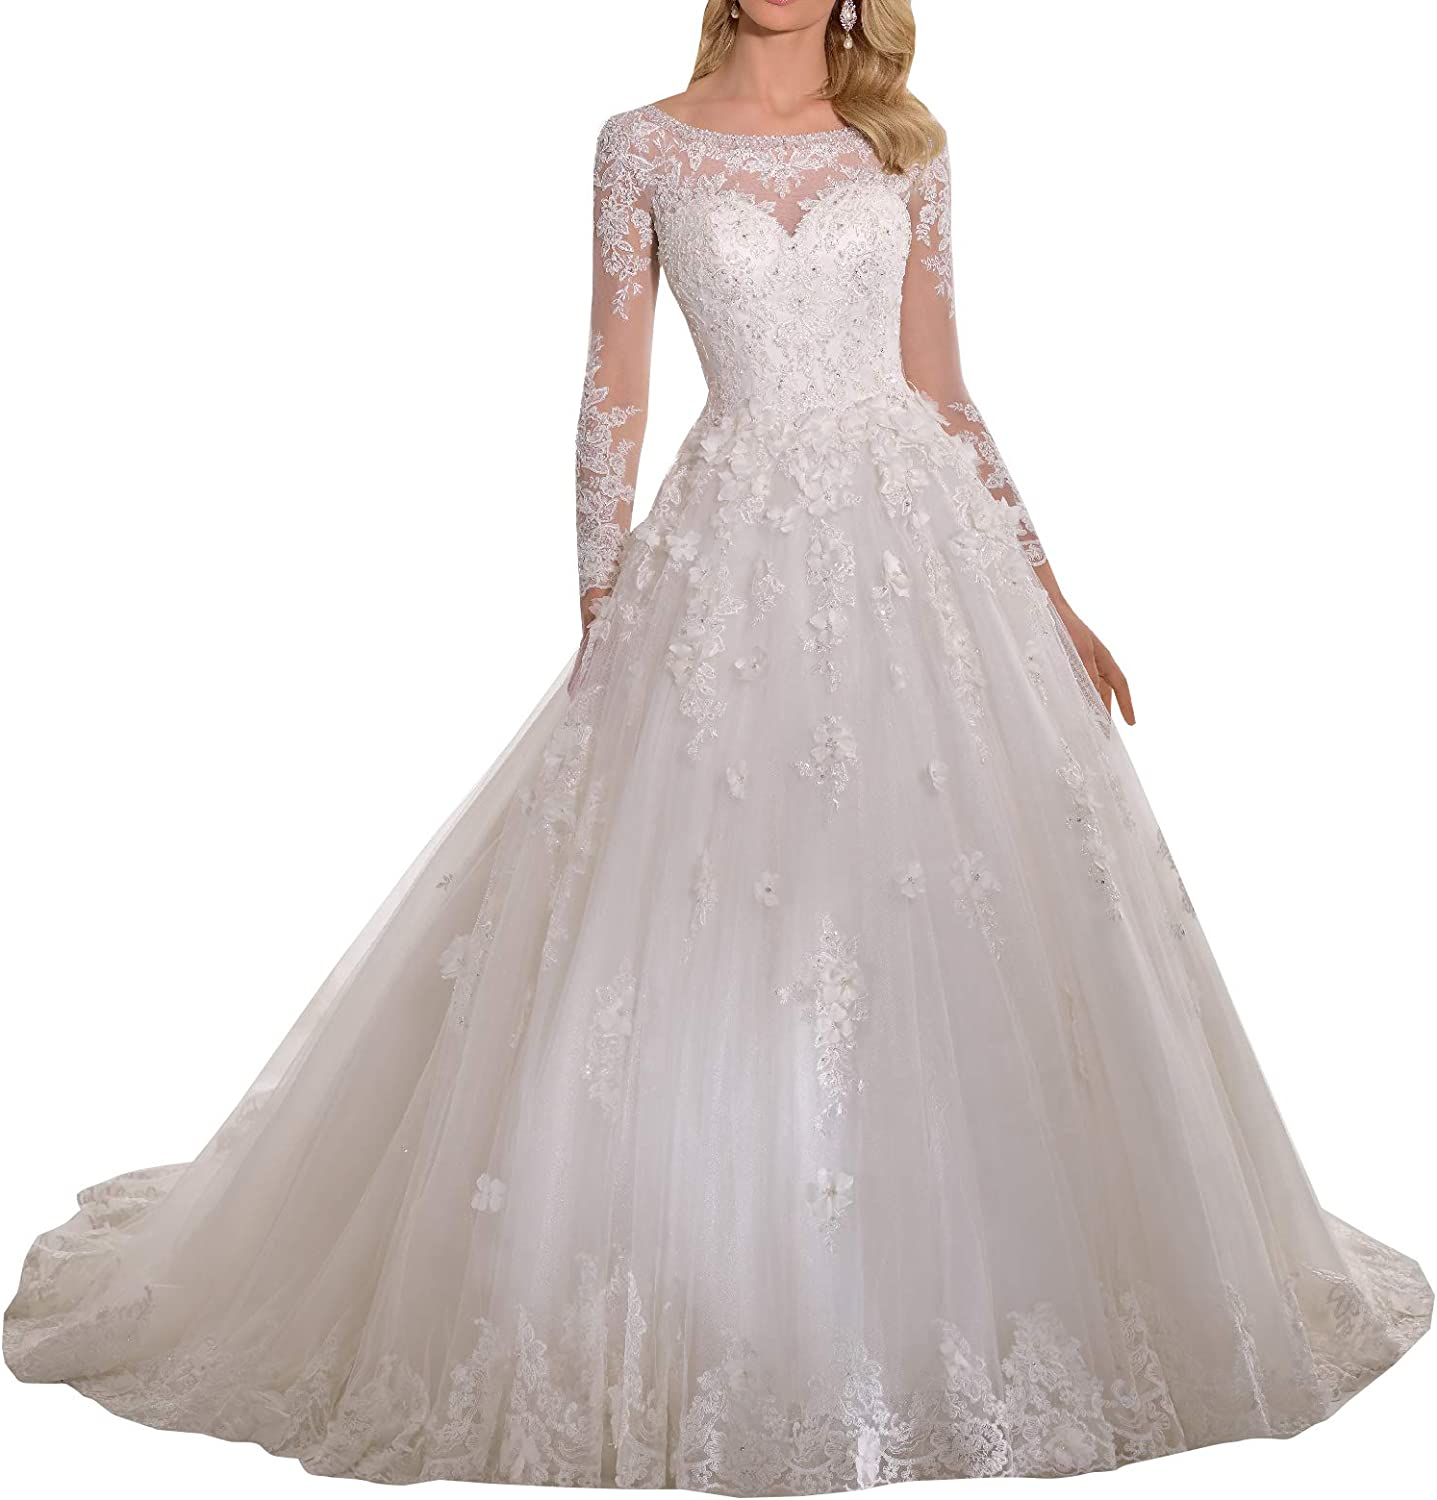 Melisa Womens Elegant Crewneck Long Sleeves Lace Beaded Wedding Dresses for Bride with Train Tulle Bridal Ball Gowns